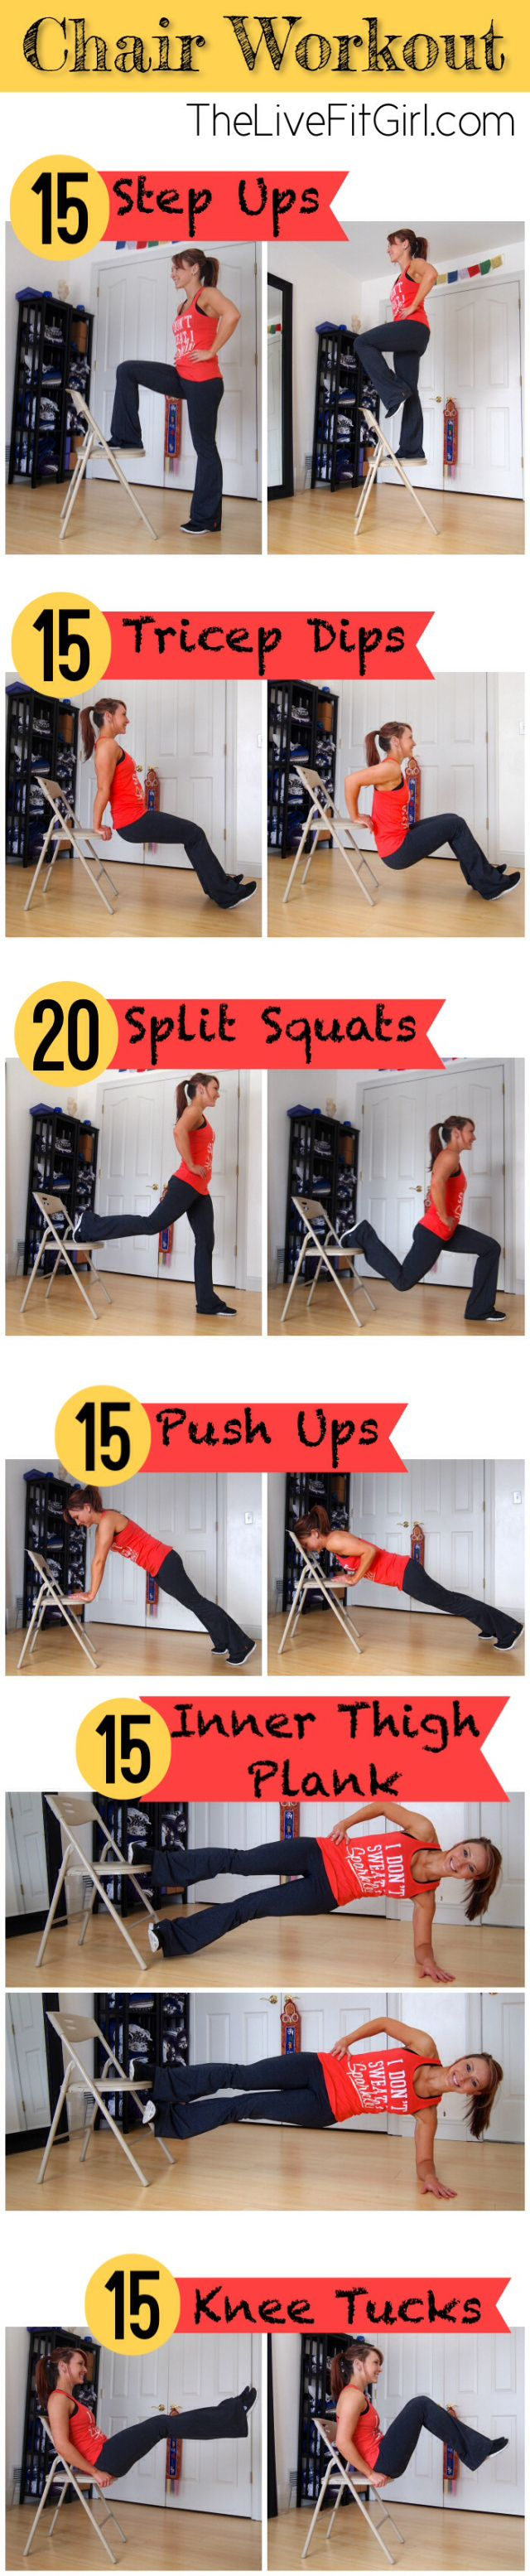 Get a great full body workout without any fancy equipment! Try this Chair Workout to tone up!